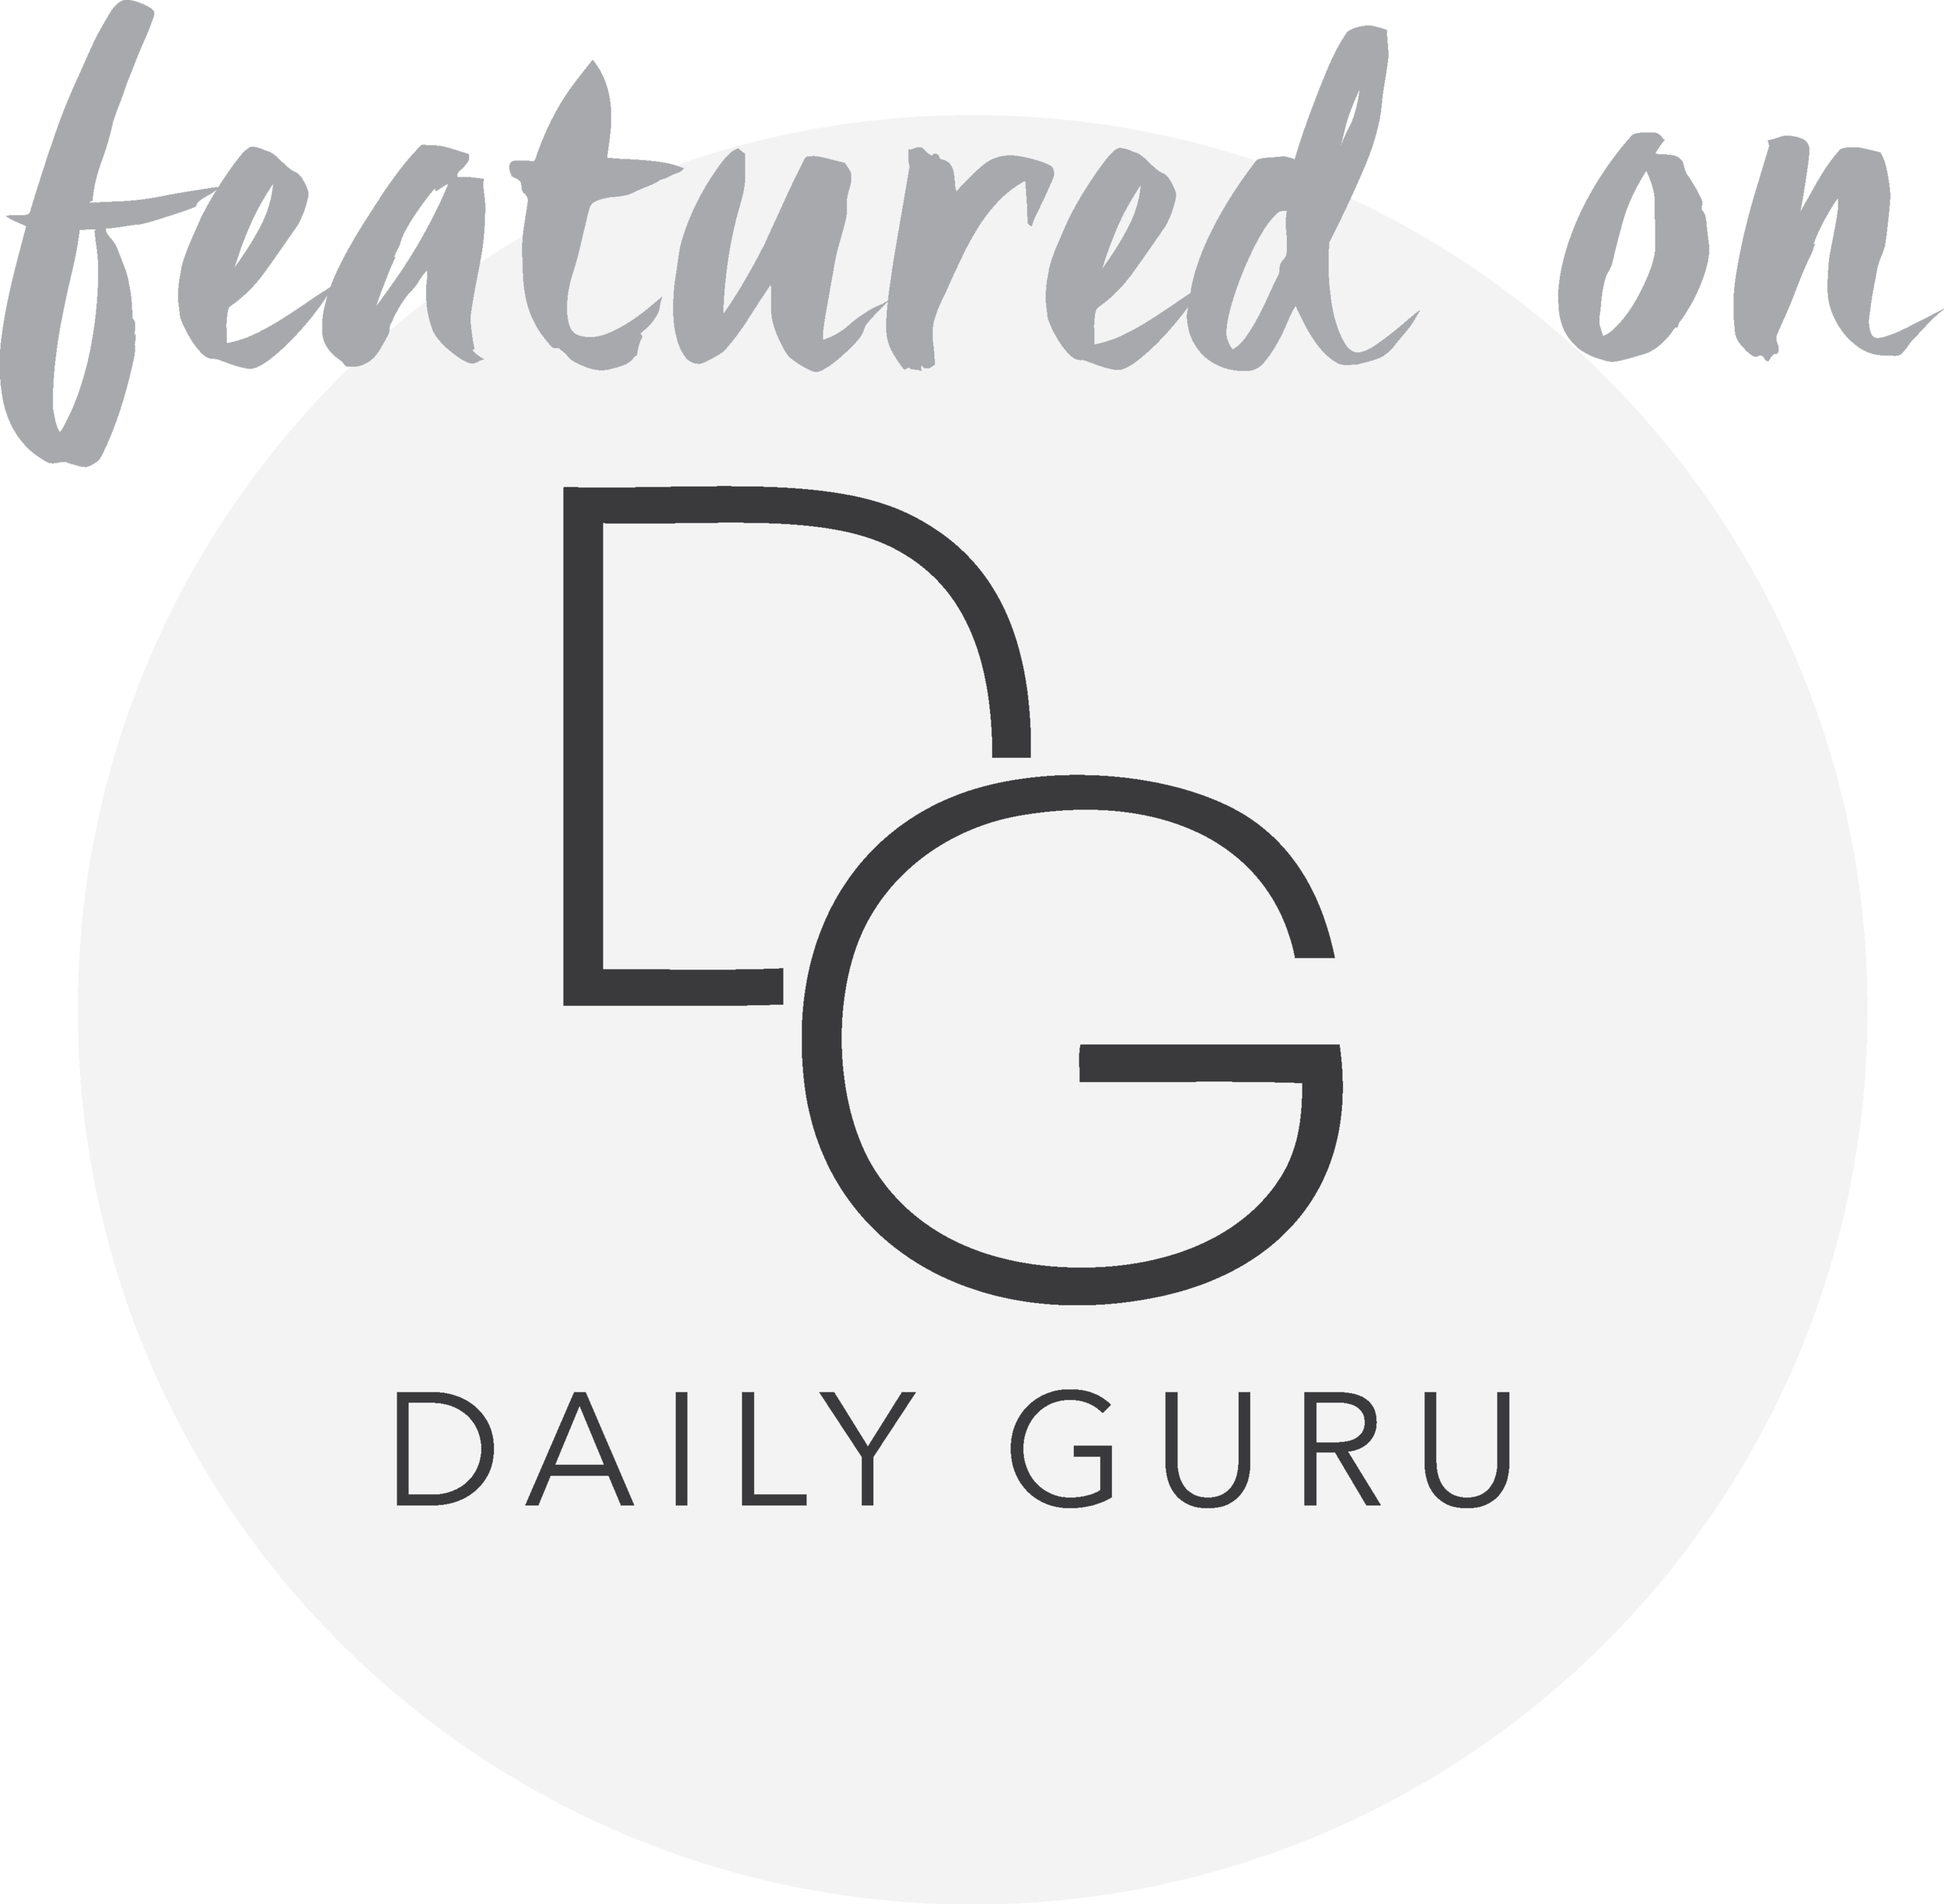 Featured on The Daily Guru.png